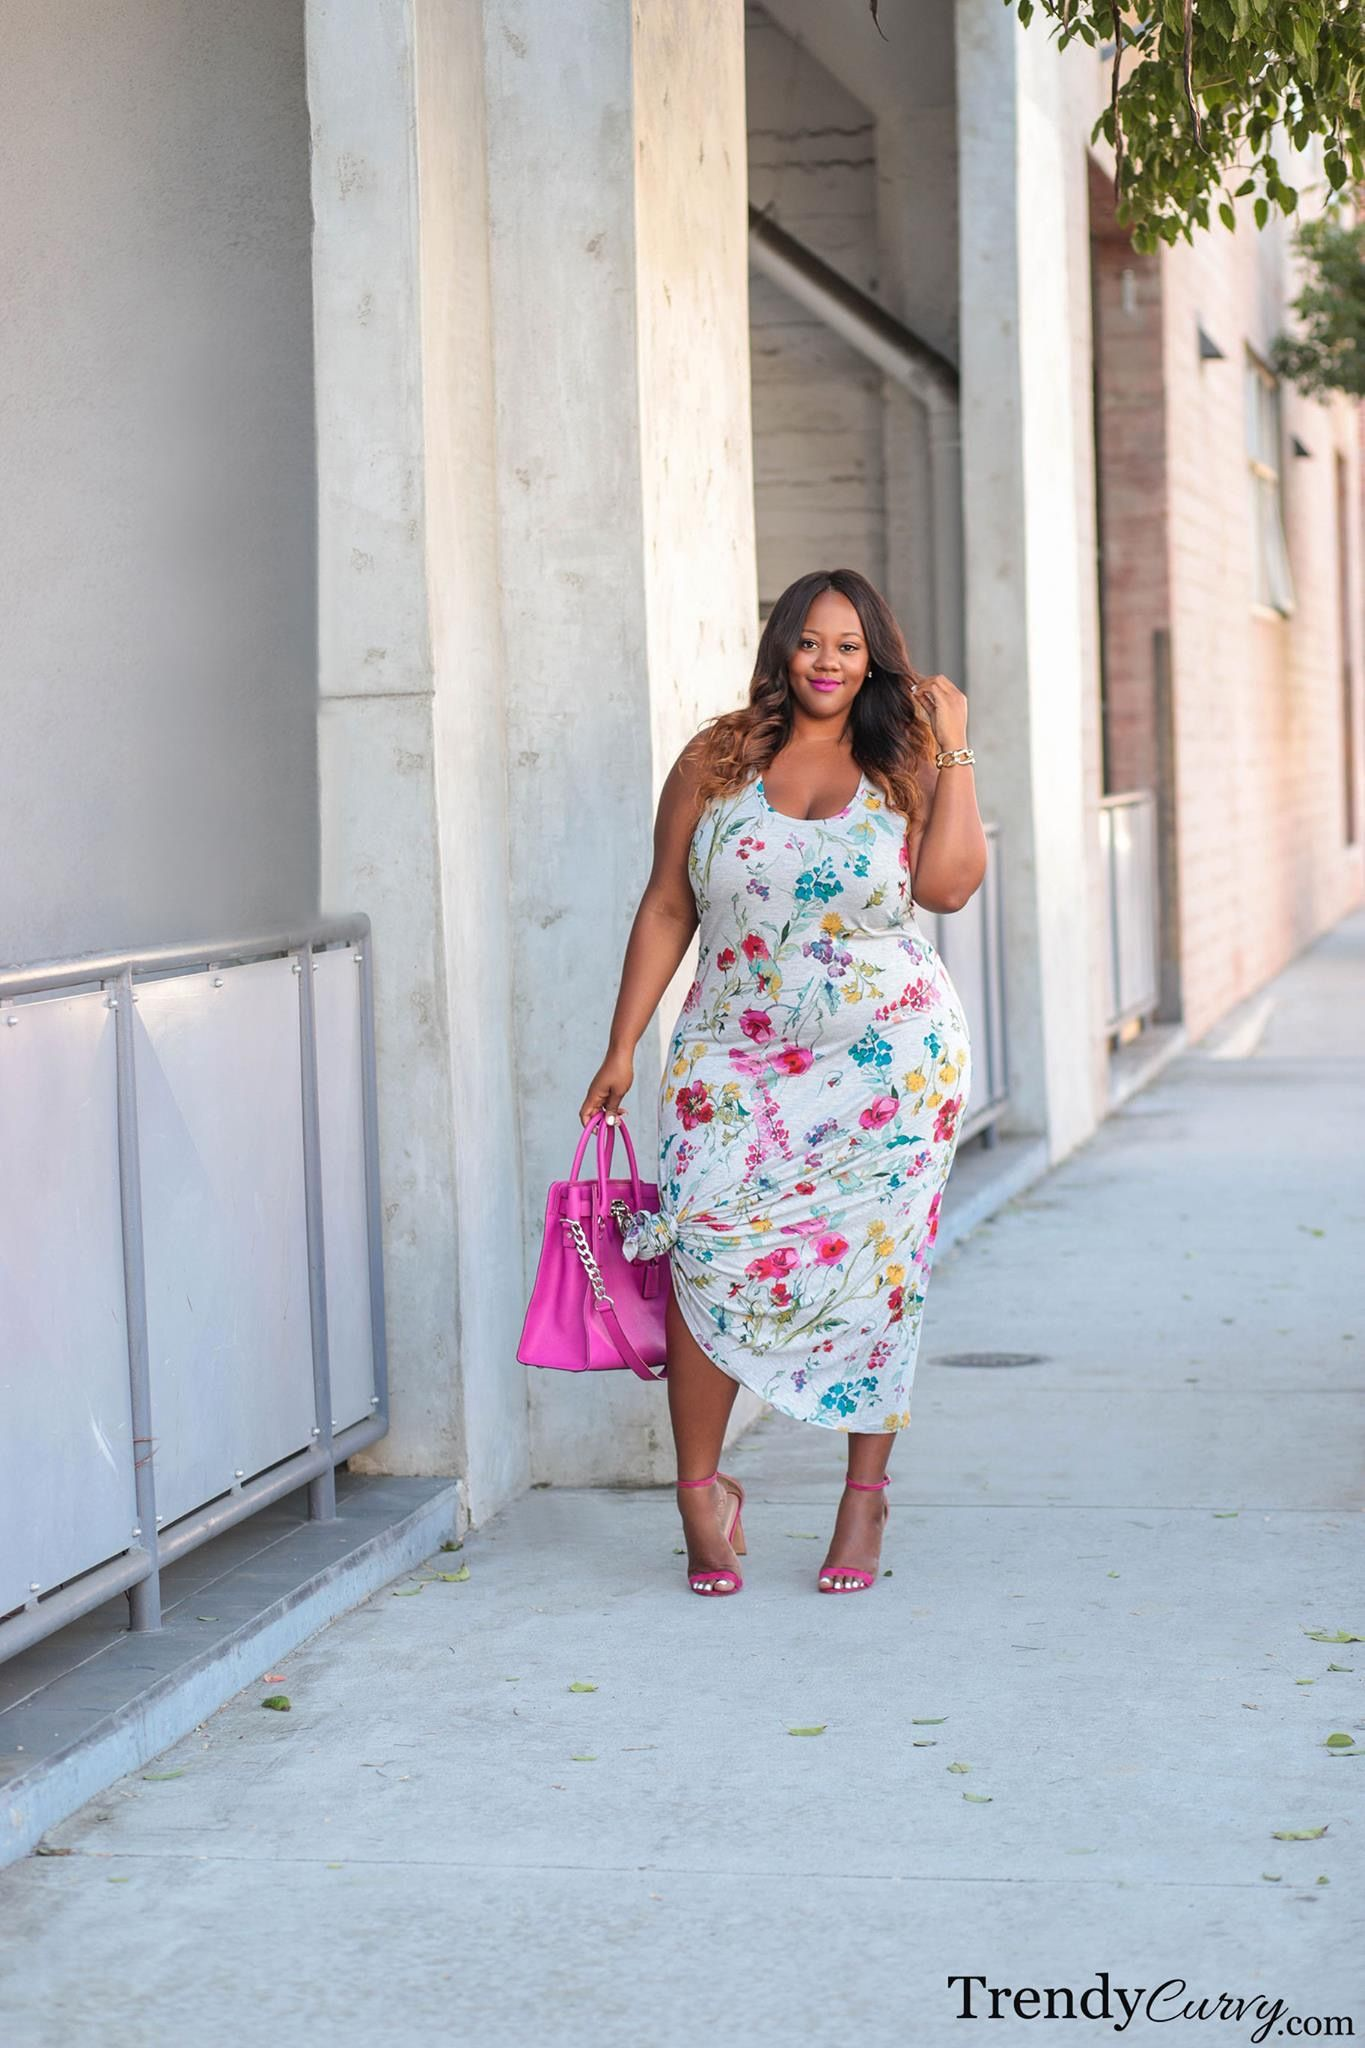 Steal: Gabi Fresh's The Real Chi Chi London Cheerily Beloved Dress Her Comments On Curvy Style, Online Shopping, and Her Swimsuits For All Collaboration forecast dress in on every day in 2019